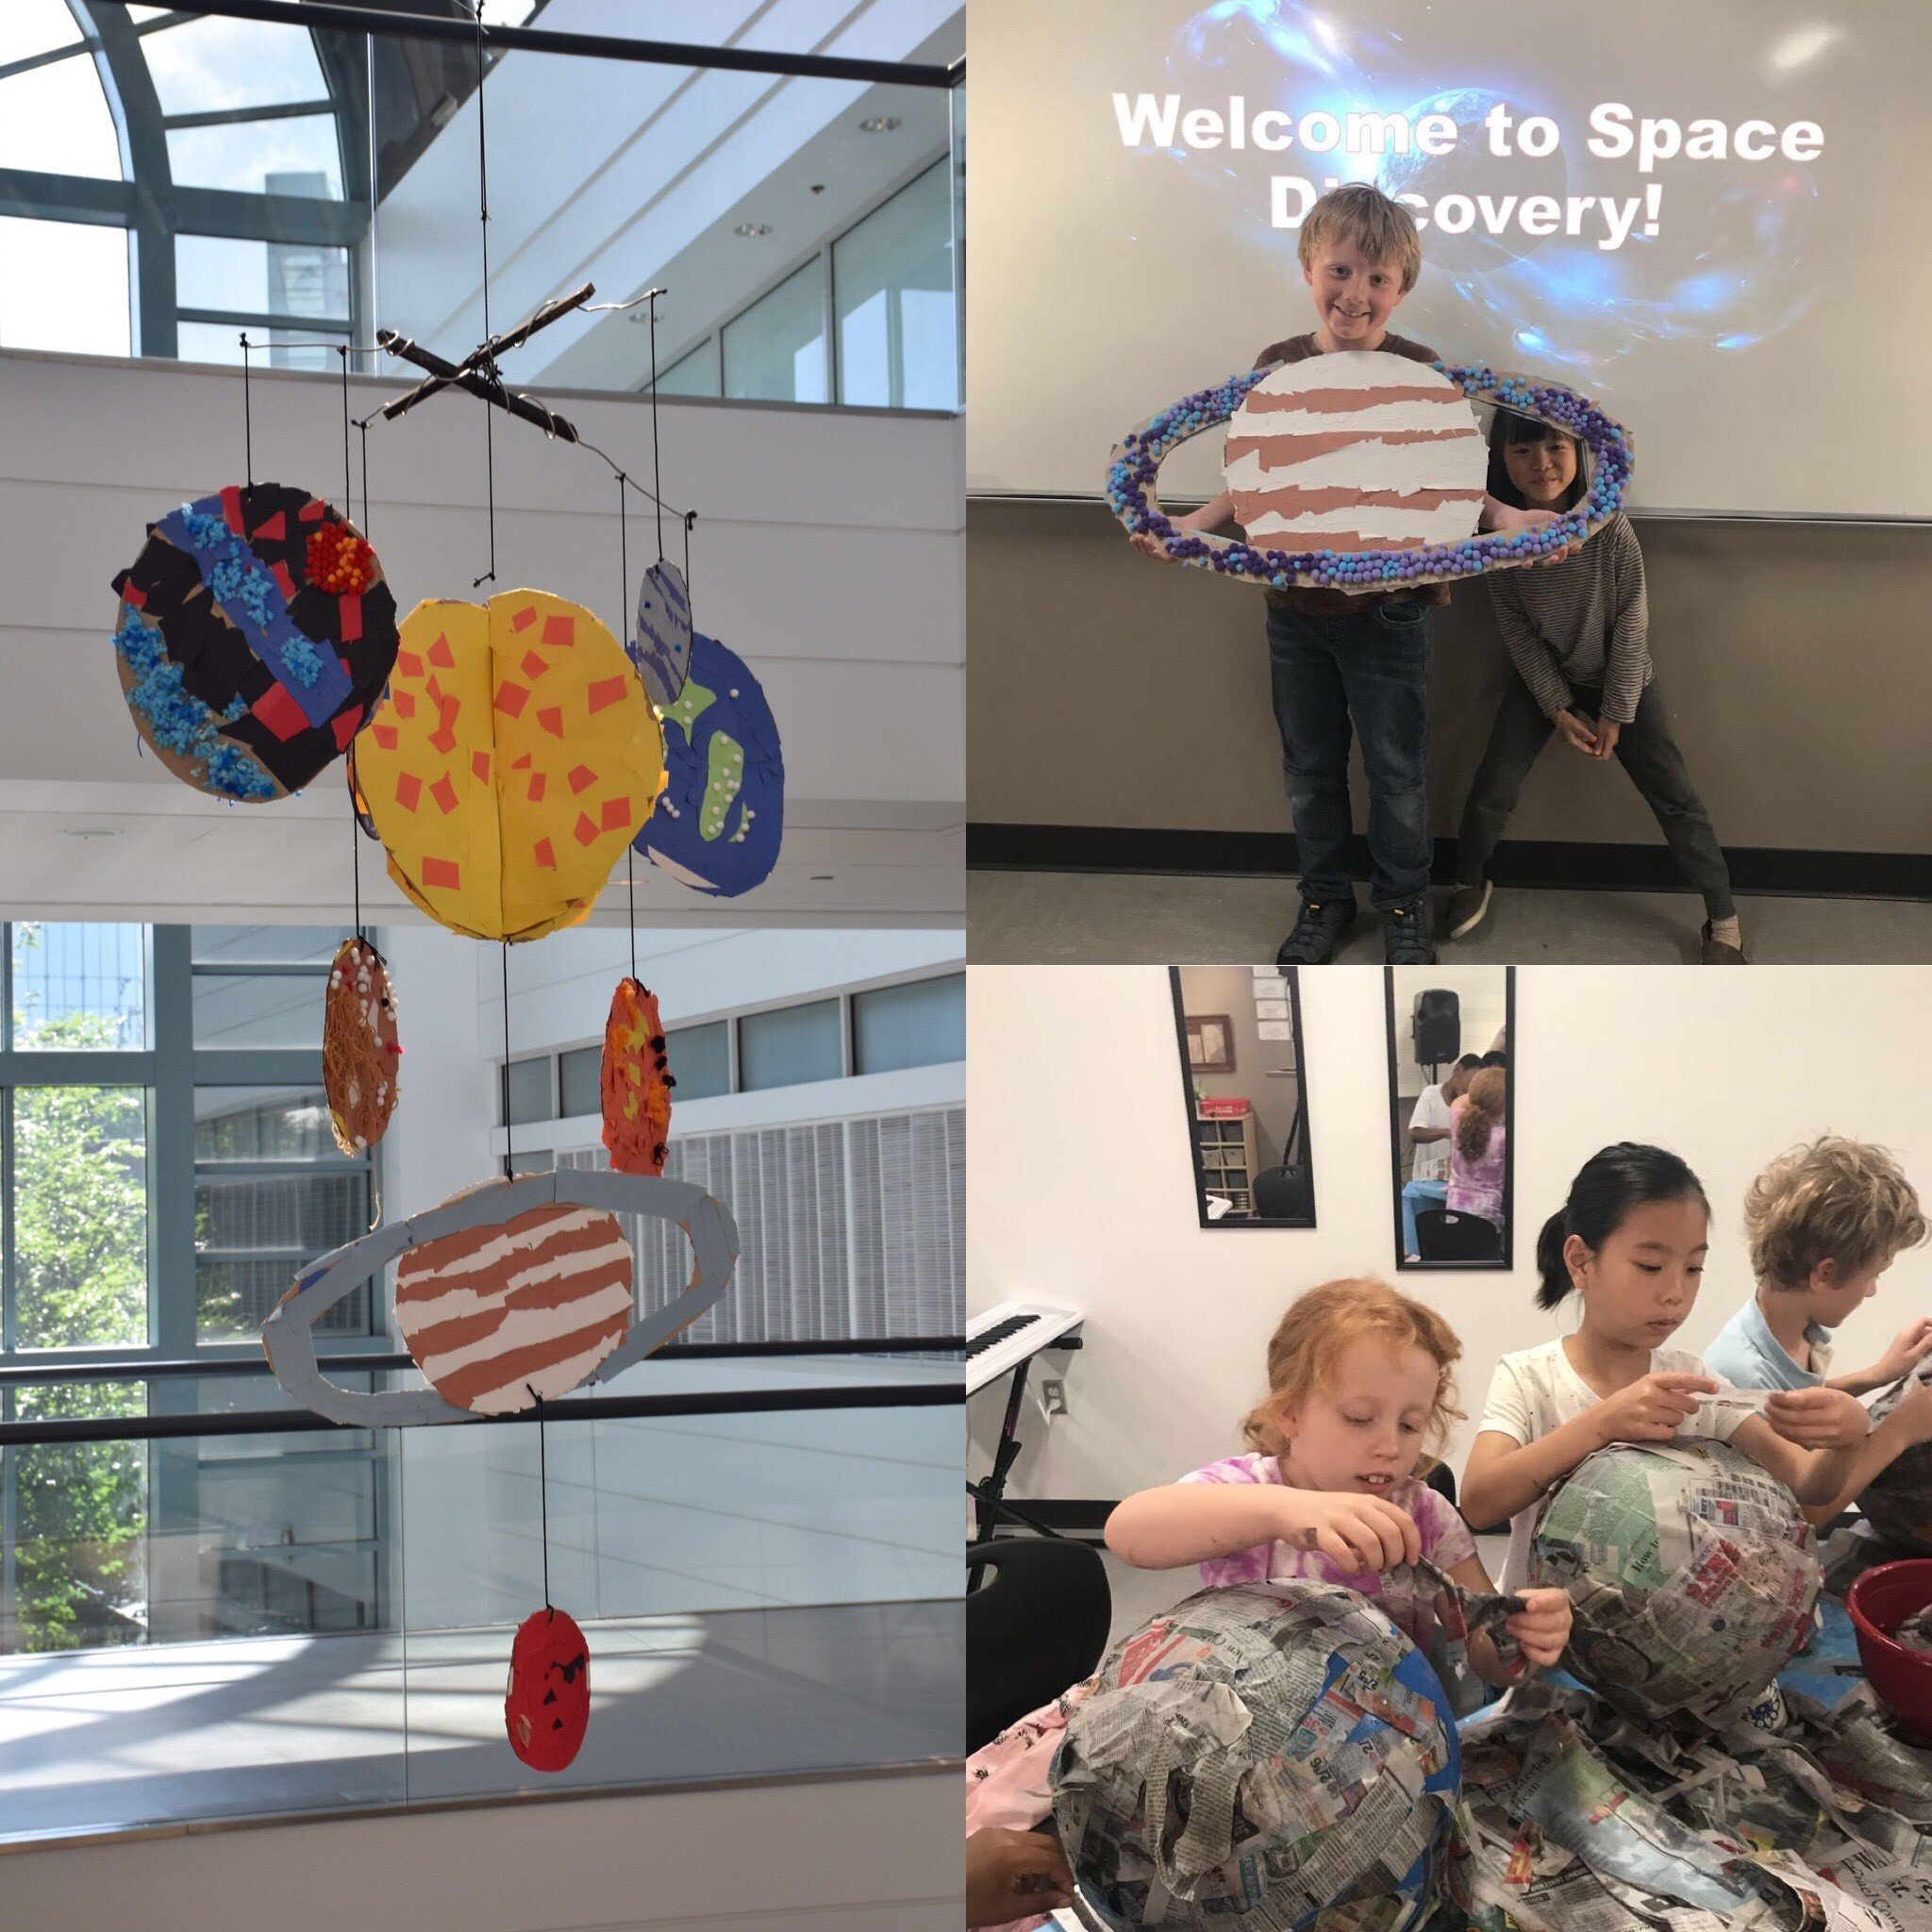 Space Discovery group